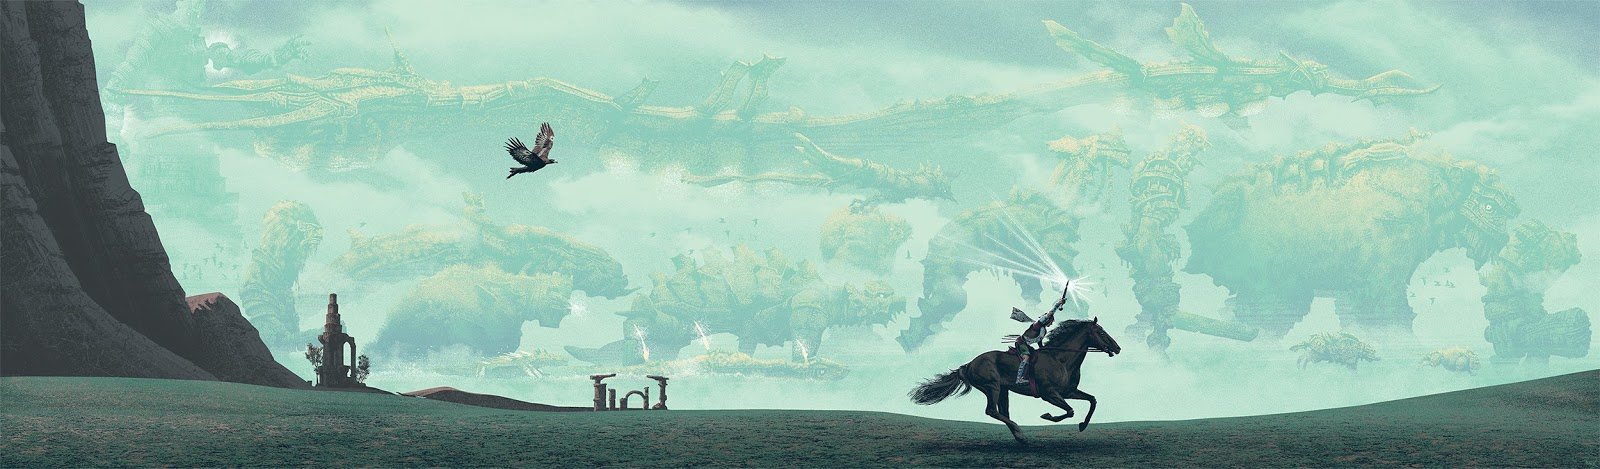 The Geeky Nerfherder Coolart Shadow Of The Colossus